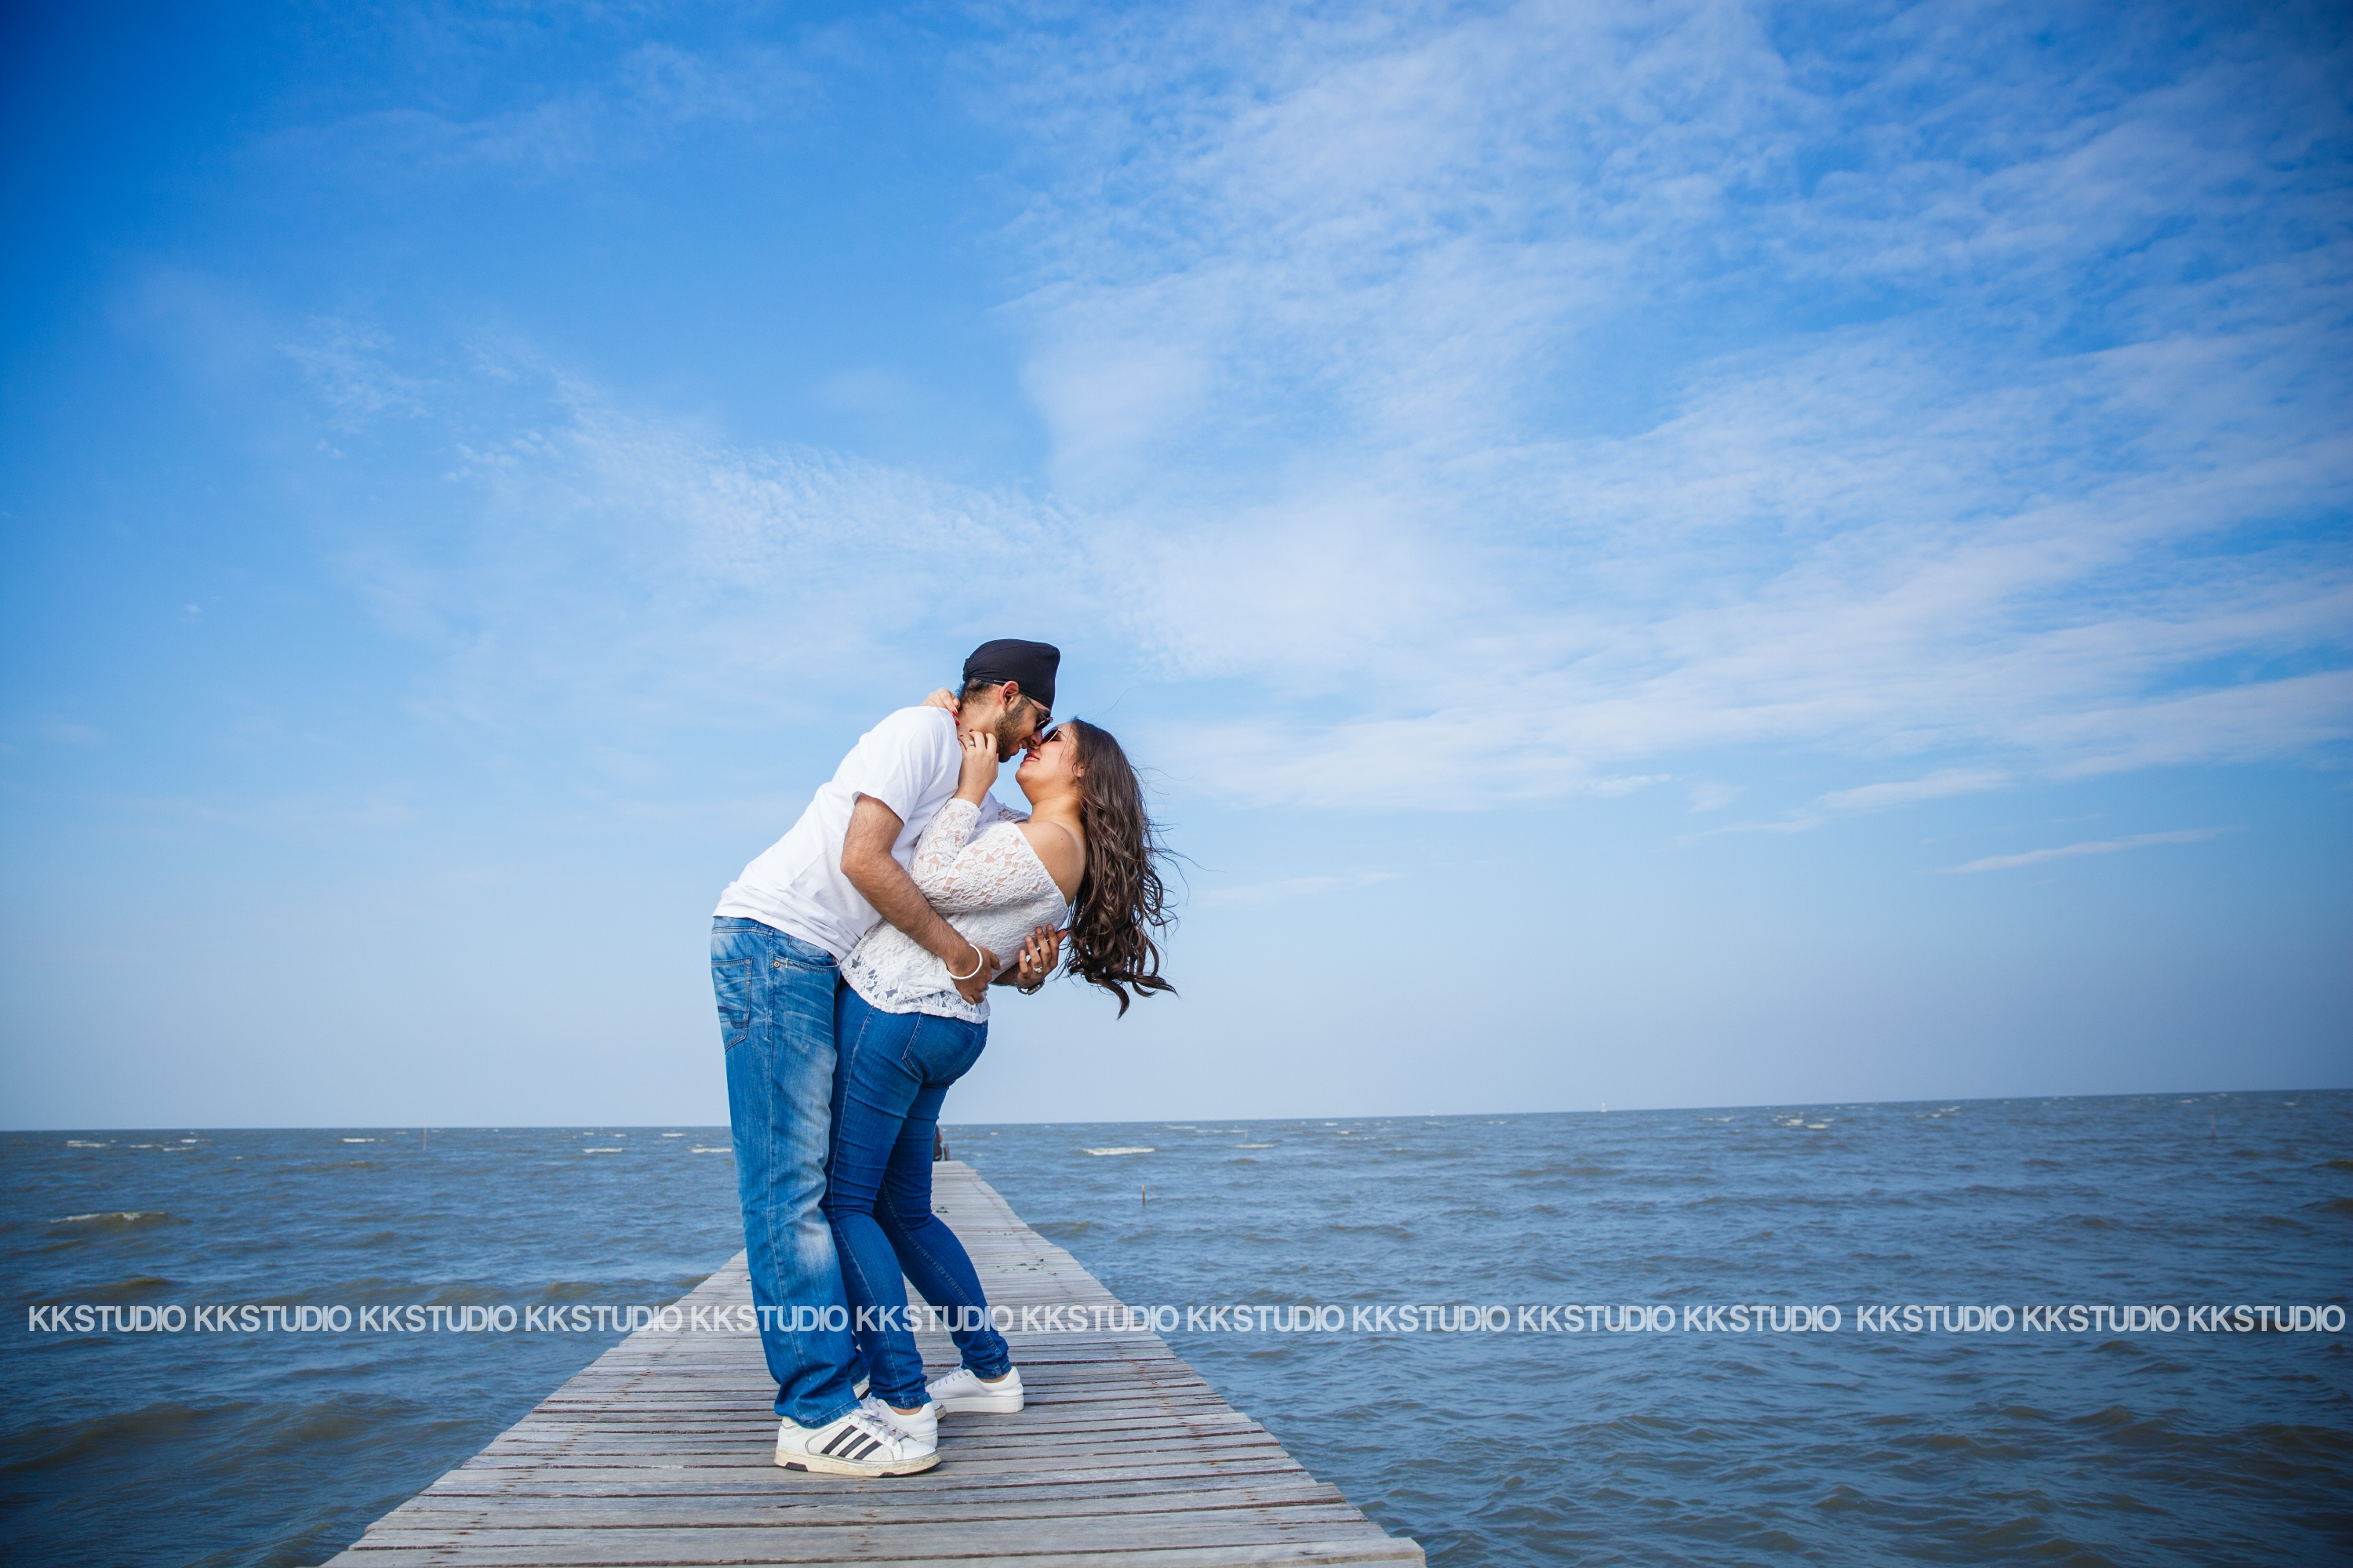 Prewedding-655_wm